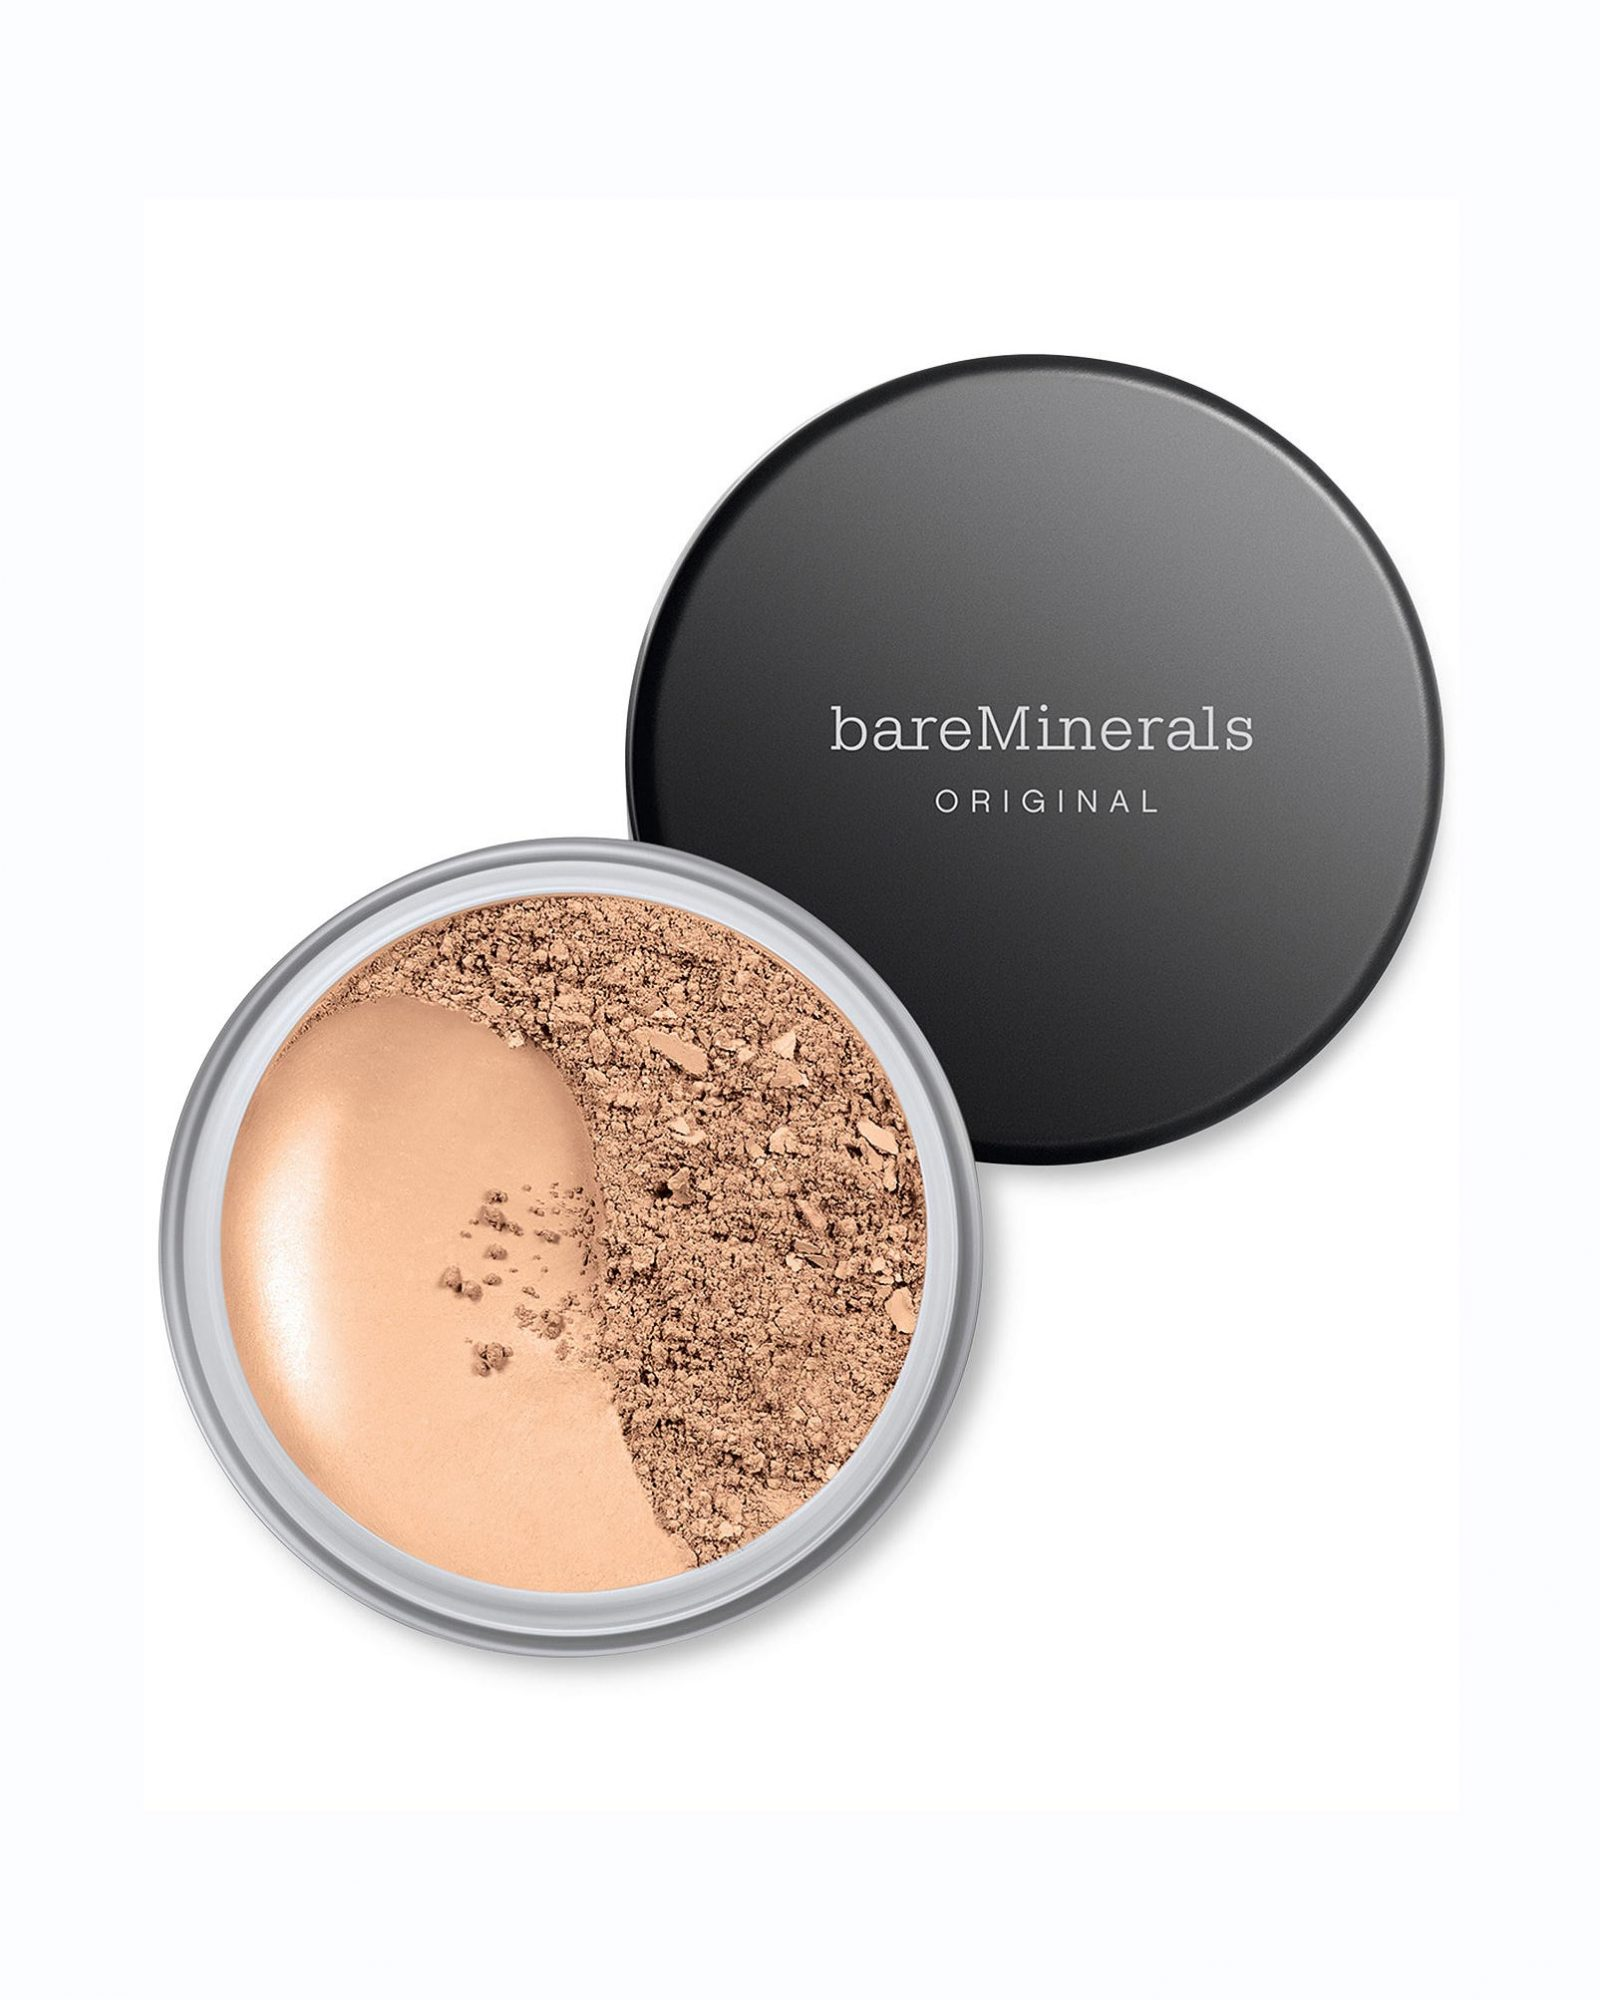 big-day-beauty-awards-bare-minerals-original-foundation-0216.jpg